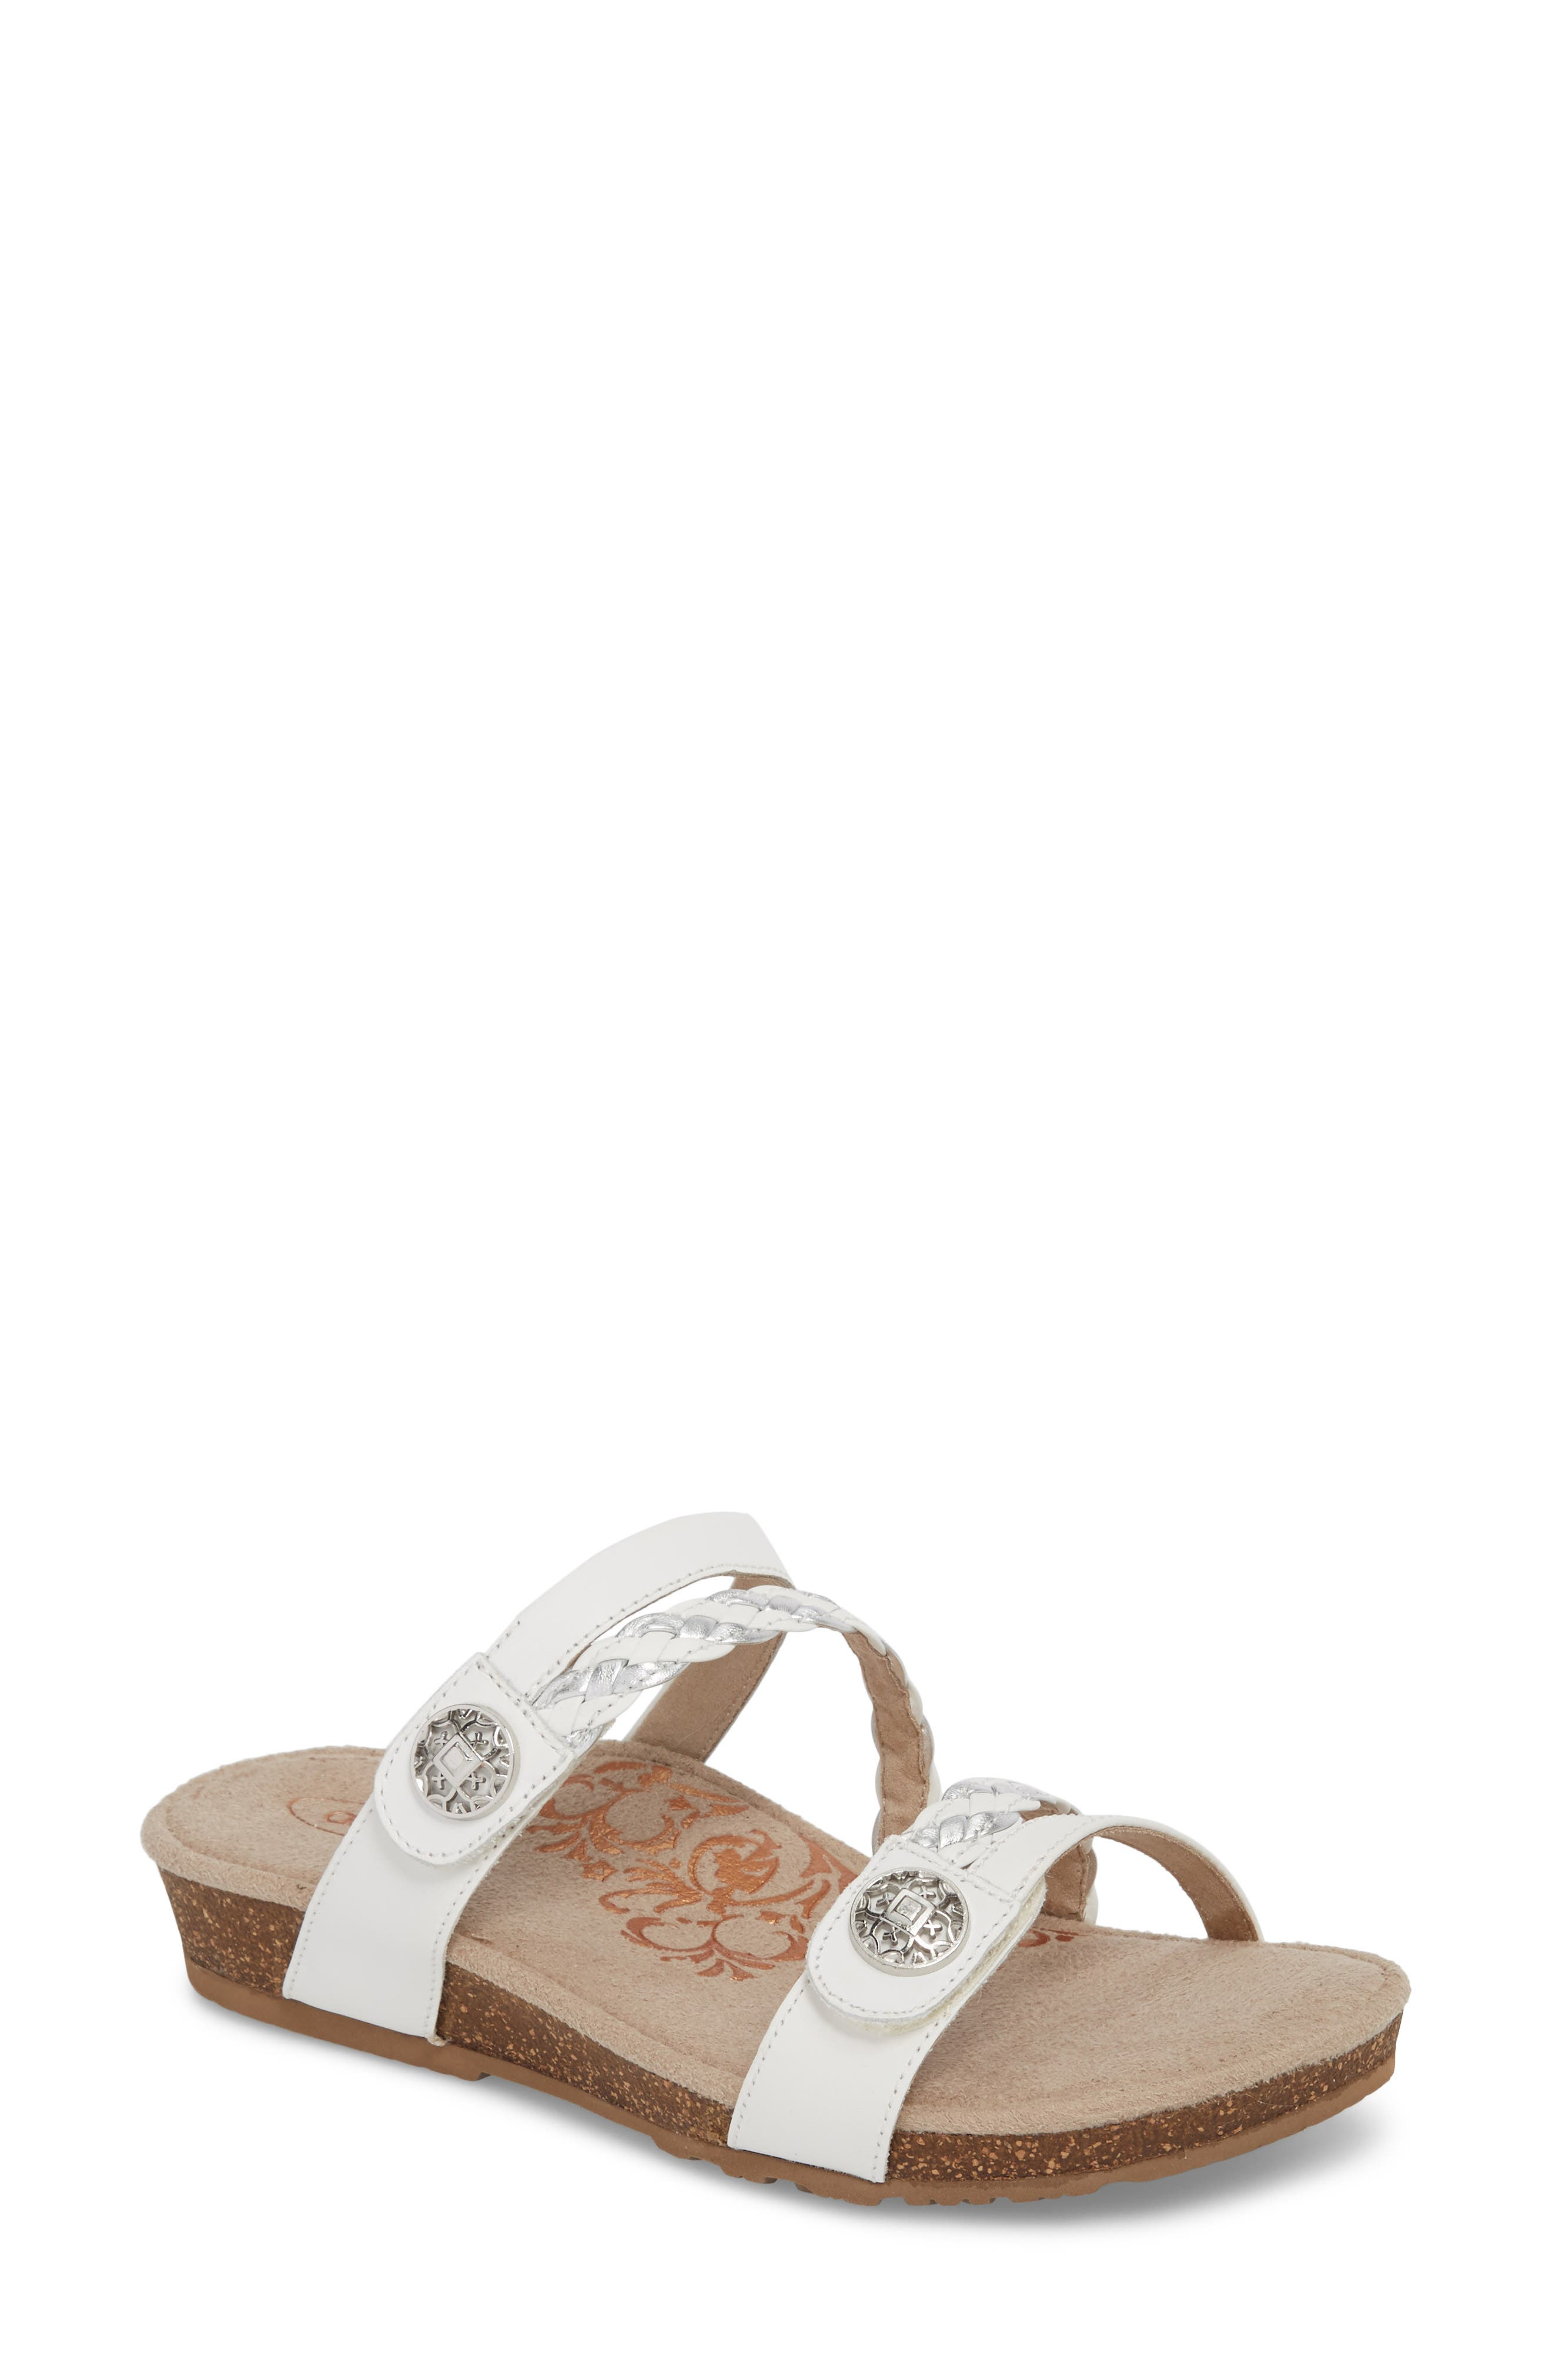 Janey Braided Slide Sandal,                         Main,                         color, WHITE LEATHER